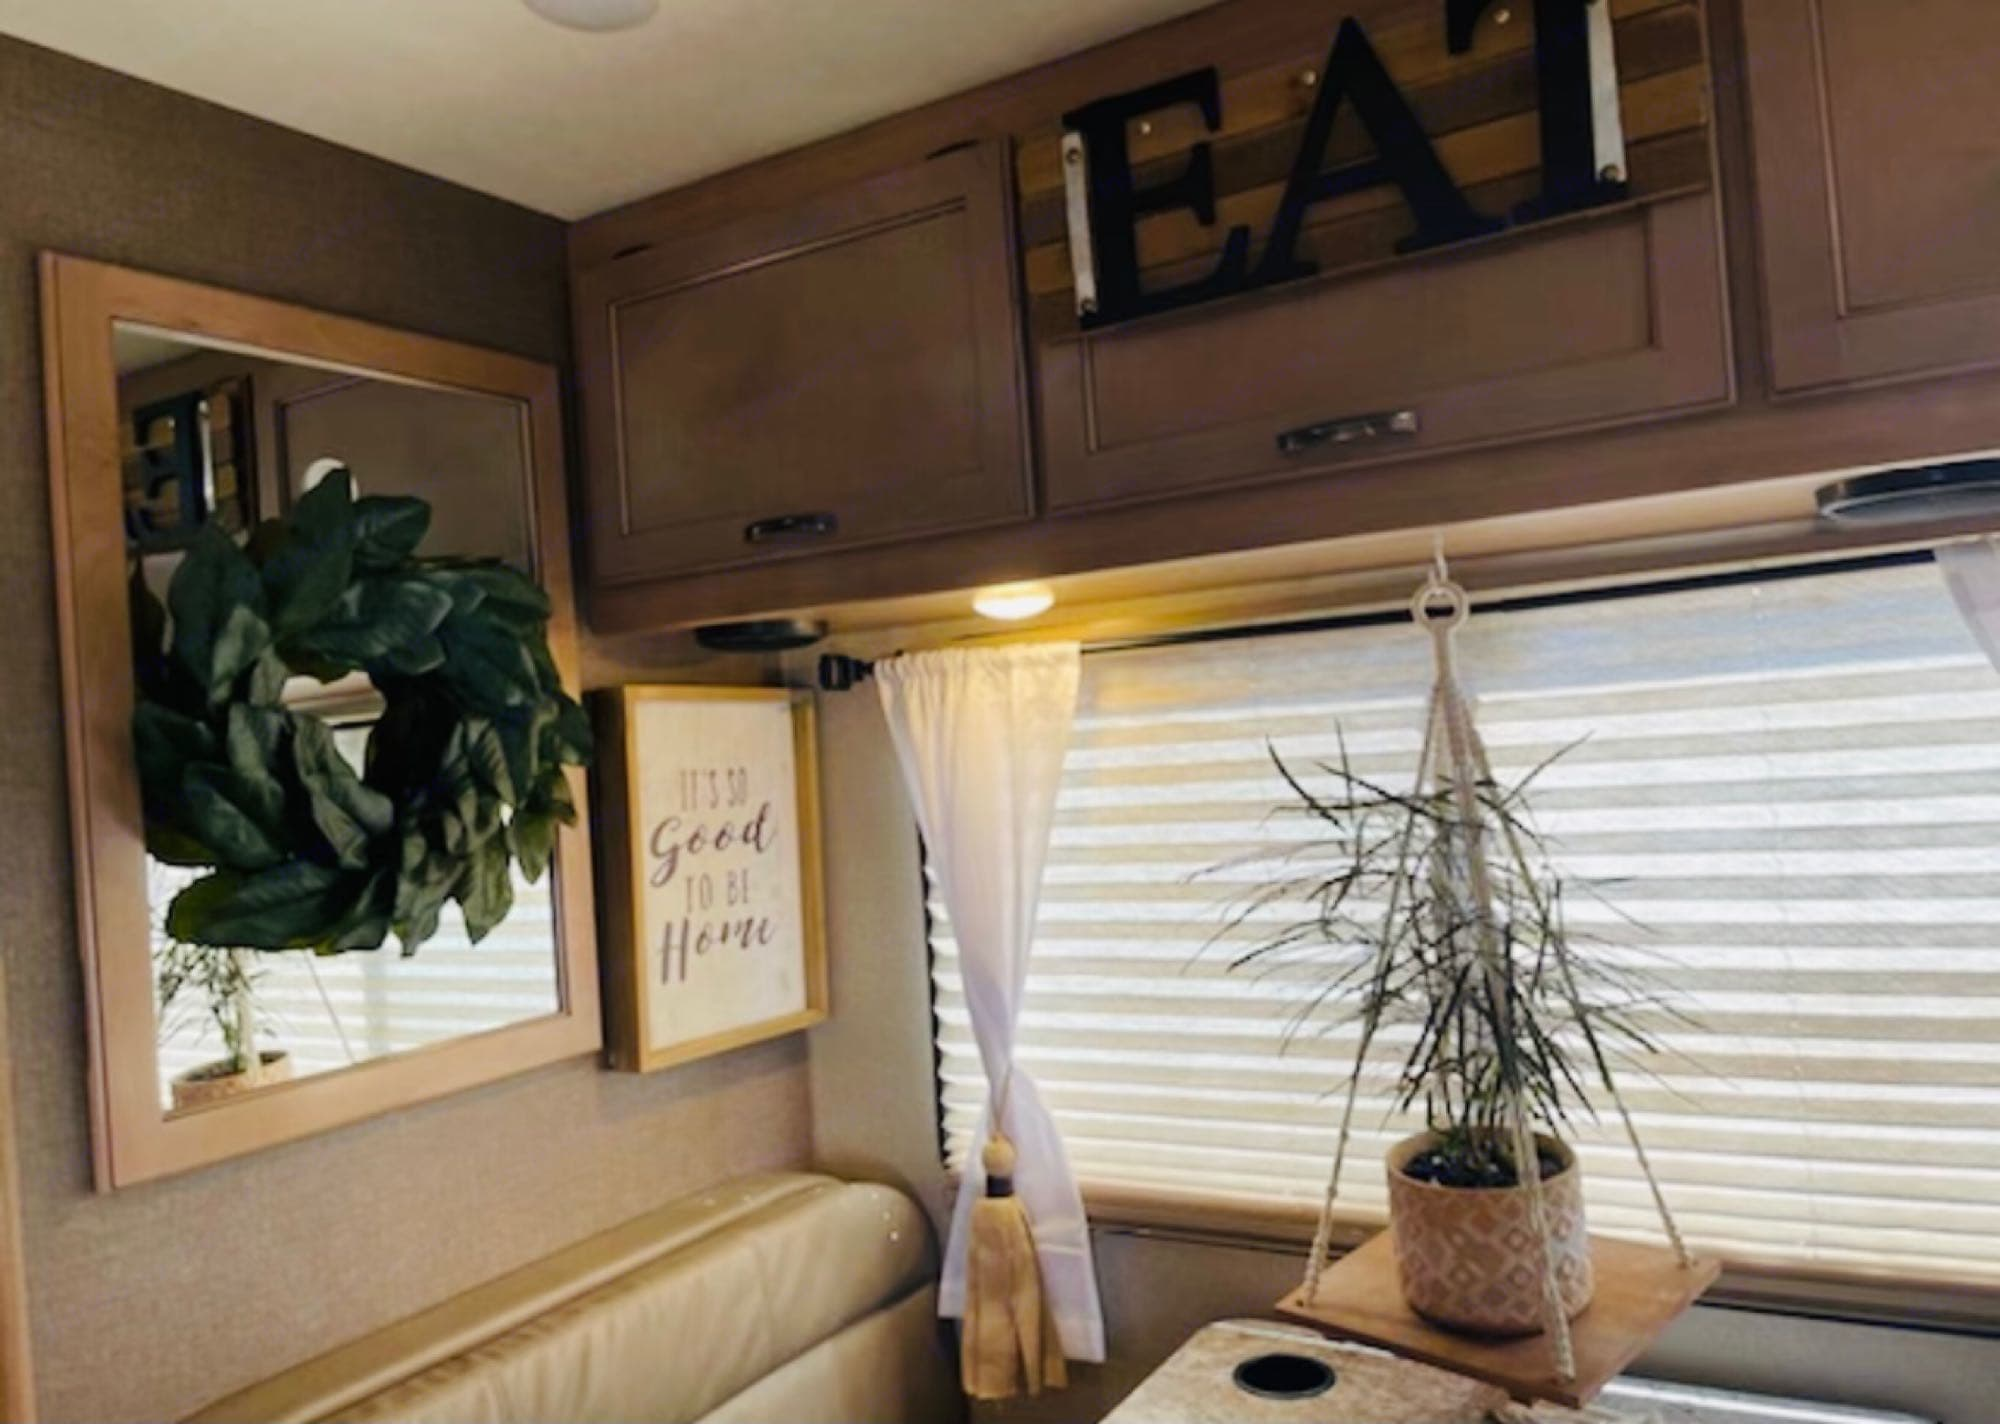 New Coach and New Interior Inviting Decor. Thor Motor Coach Four Winds 23B 2019